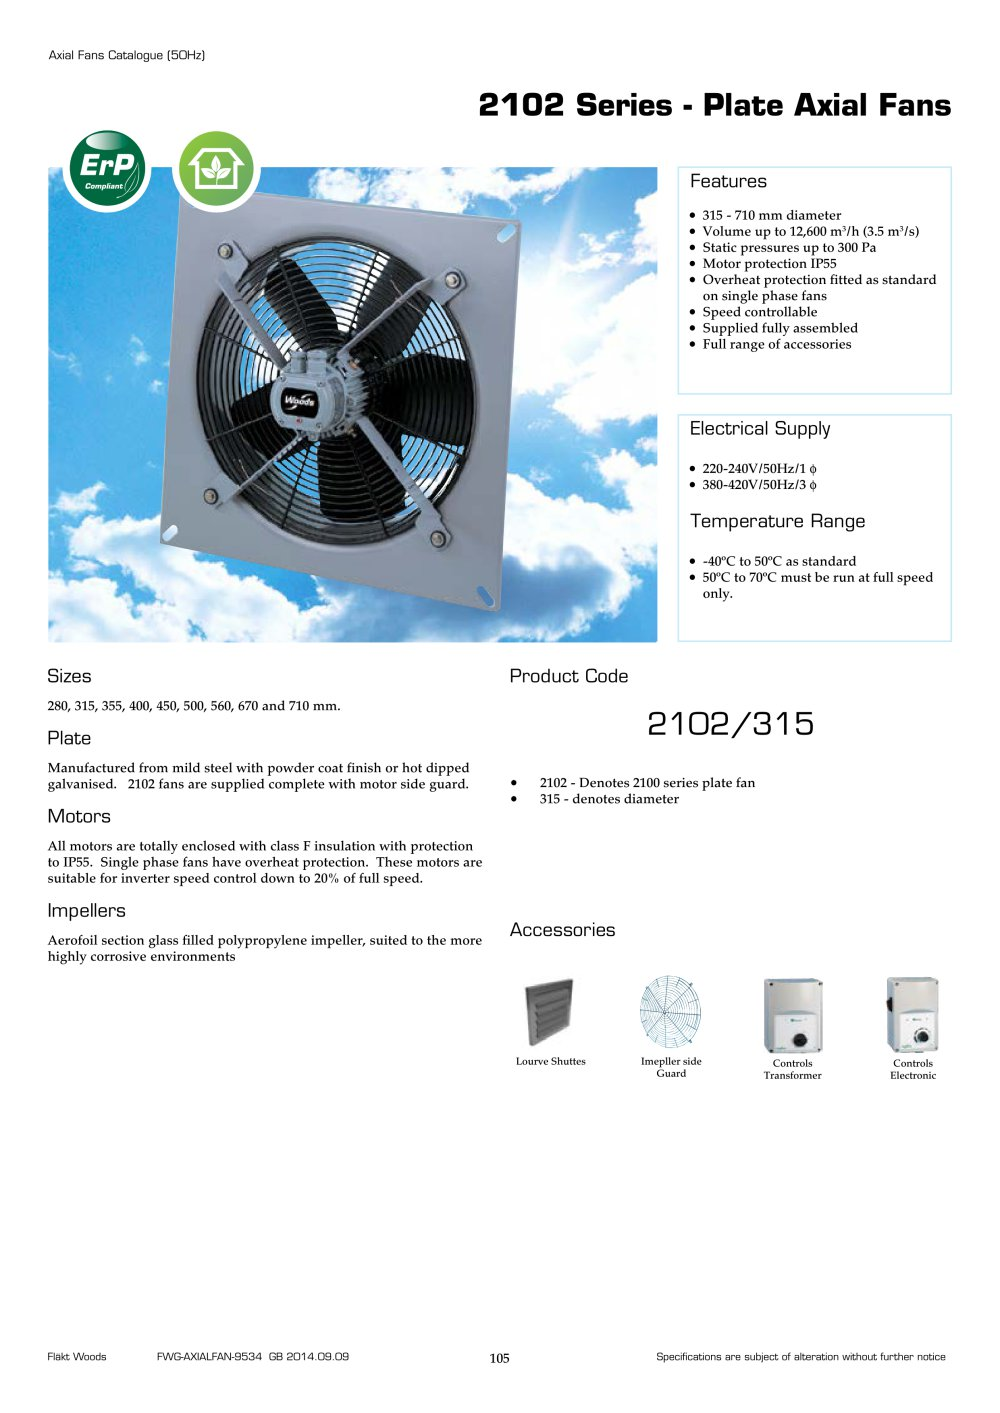 2102 Series Plate Axial Fans Flakt Woods Pdf Catalogues 240v Rims Wiring Diagram 1 7 Pages